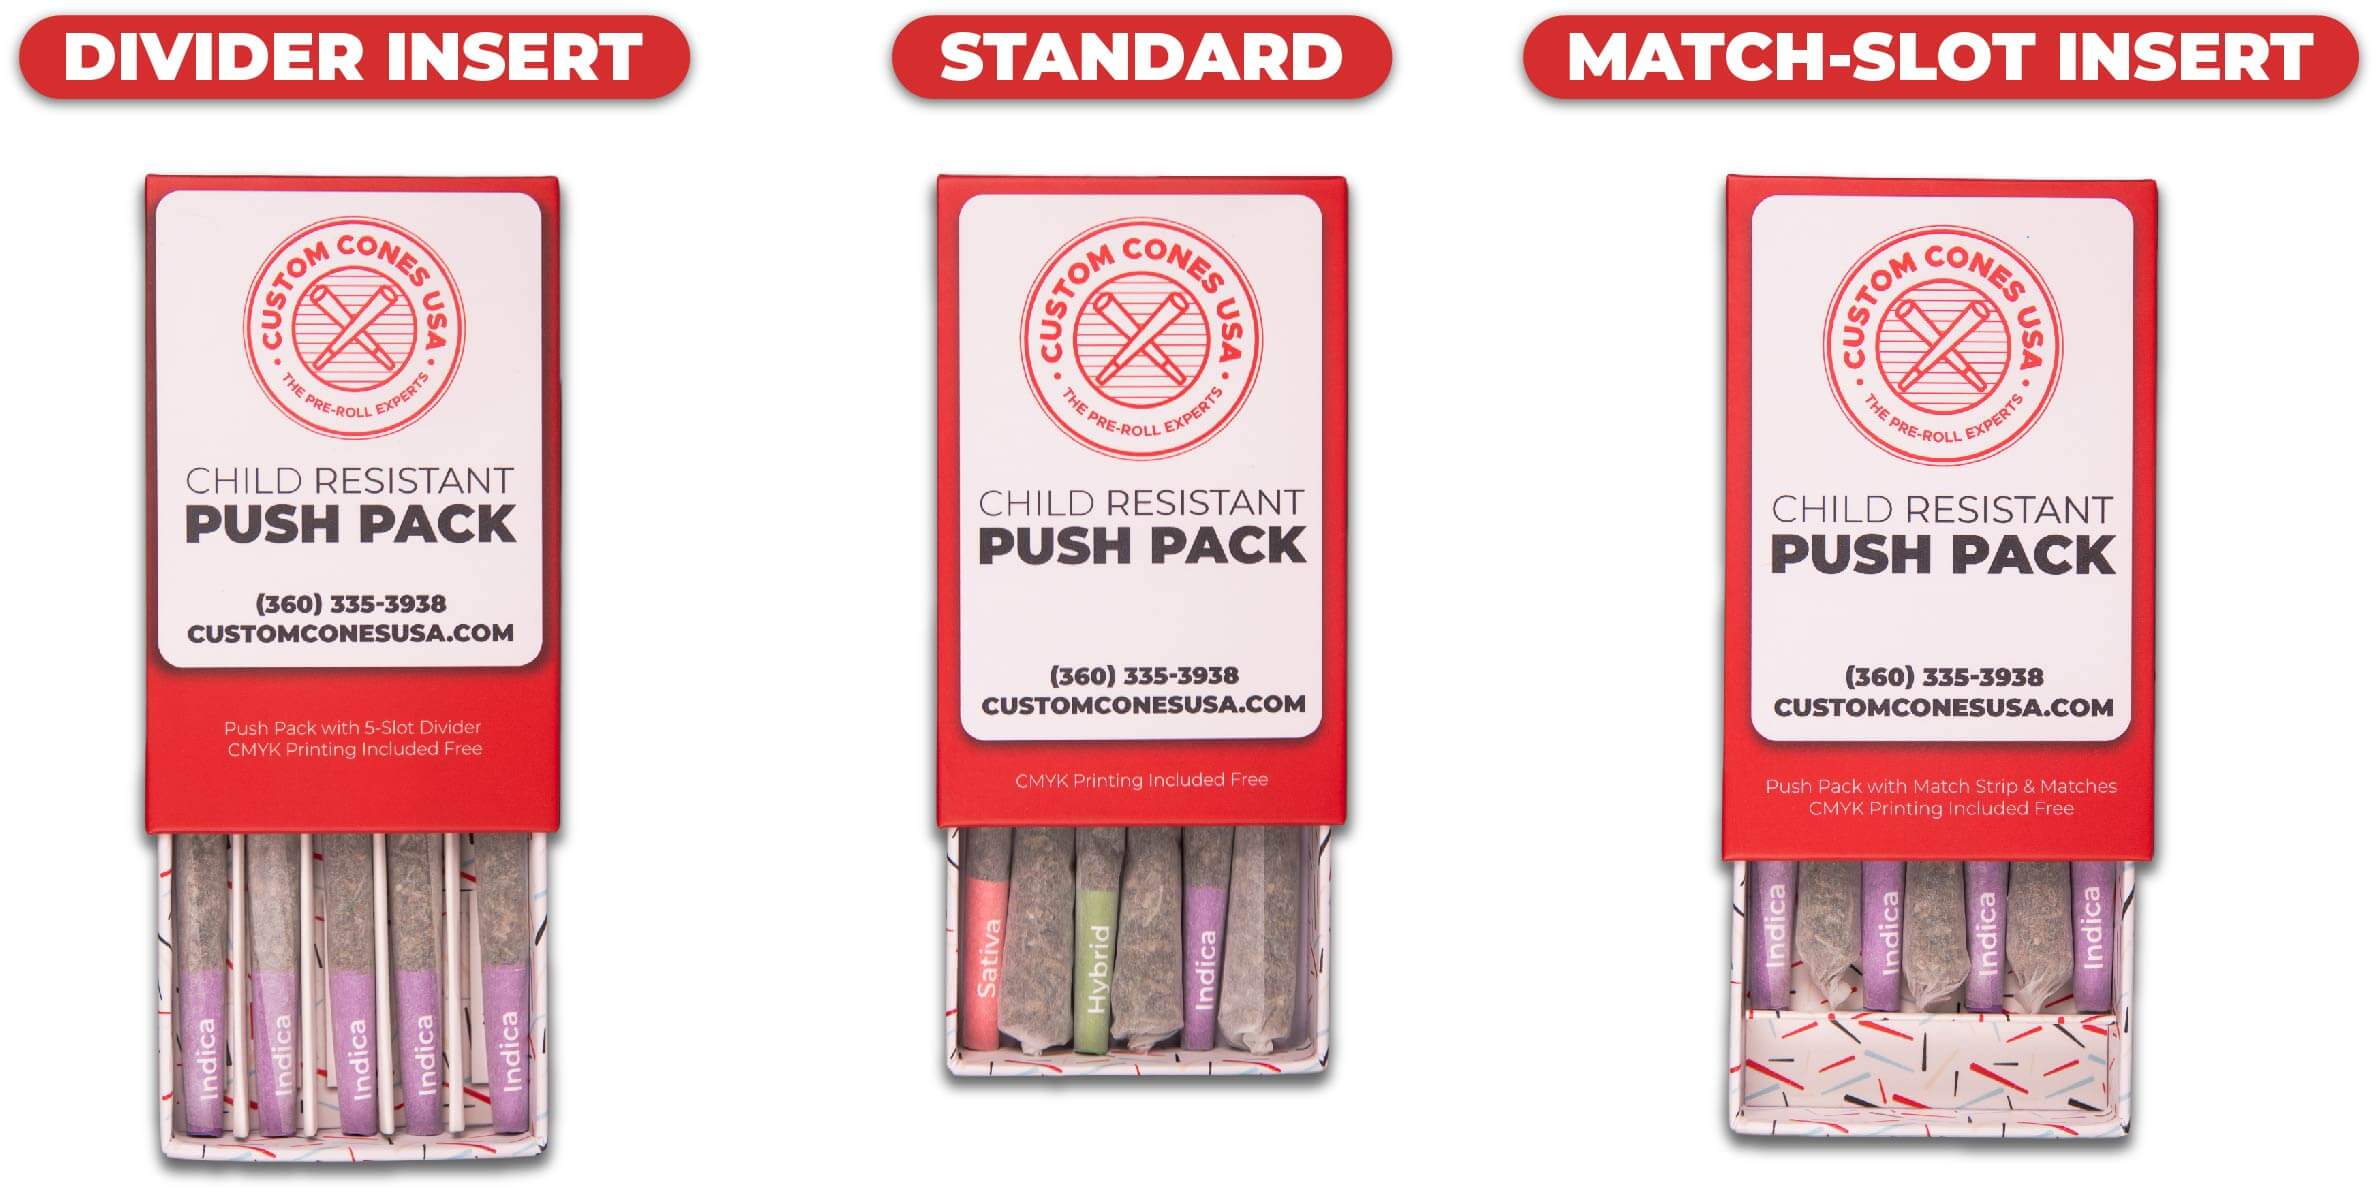 three variations of the push pack. Divider insert, standard, and then match-slot insert